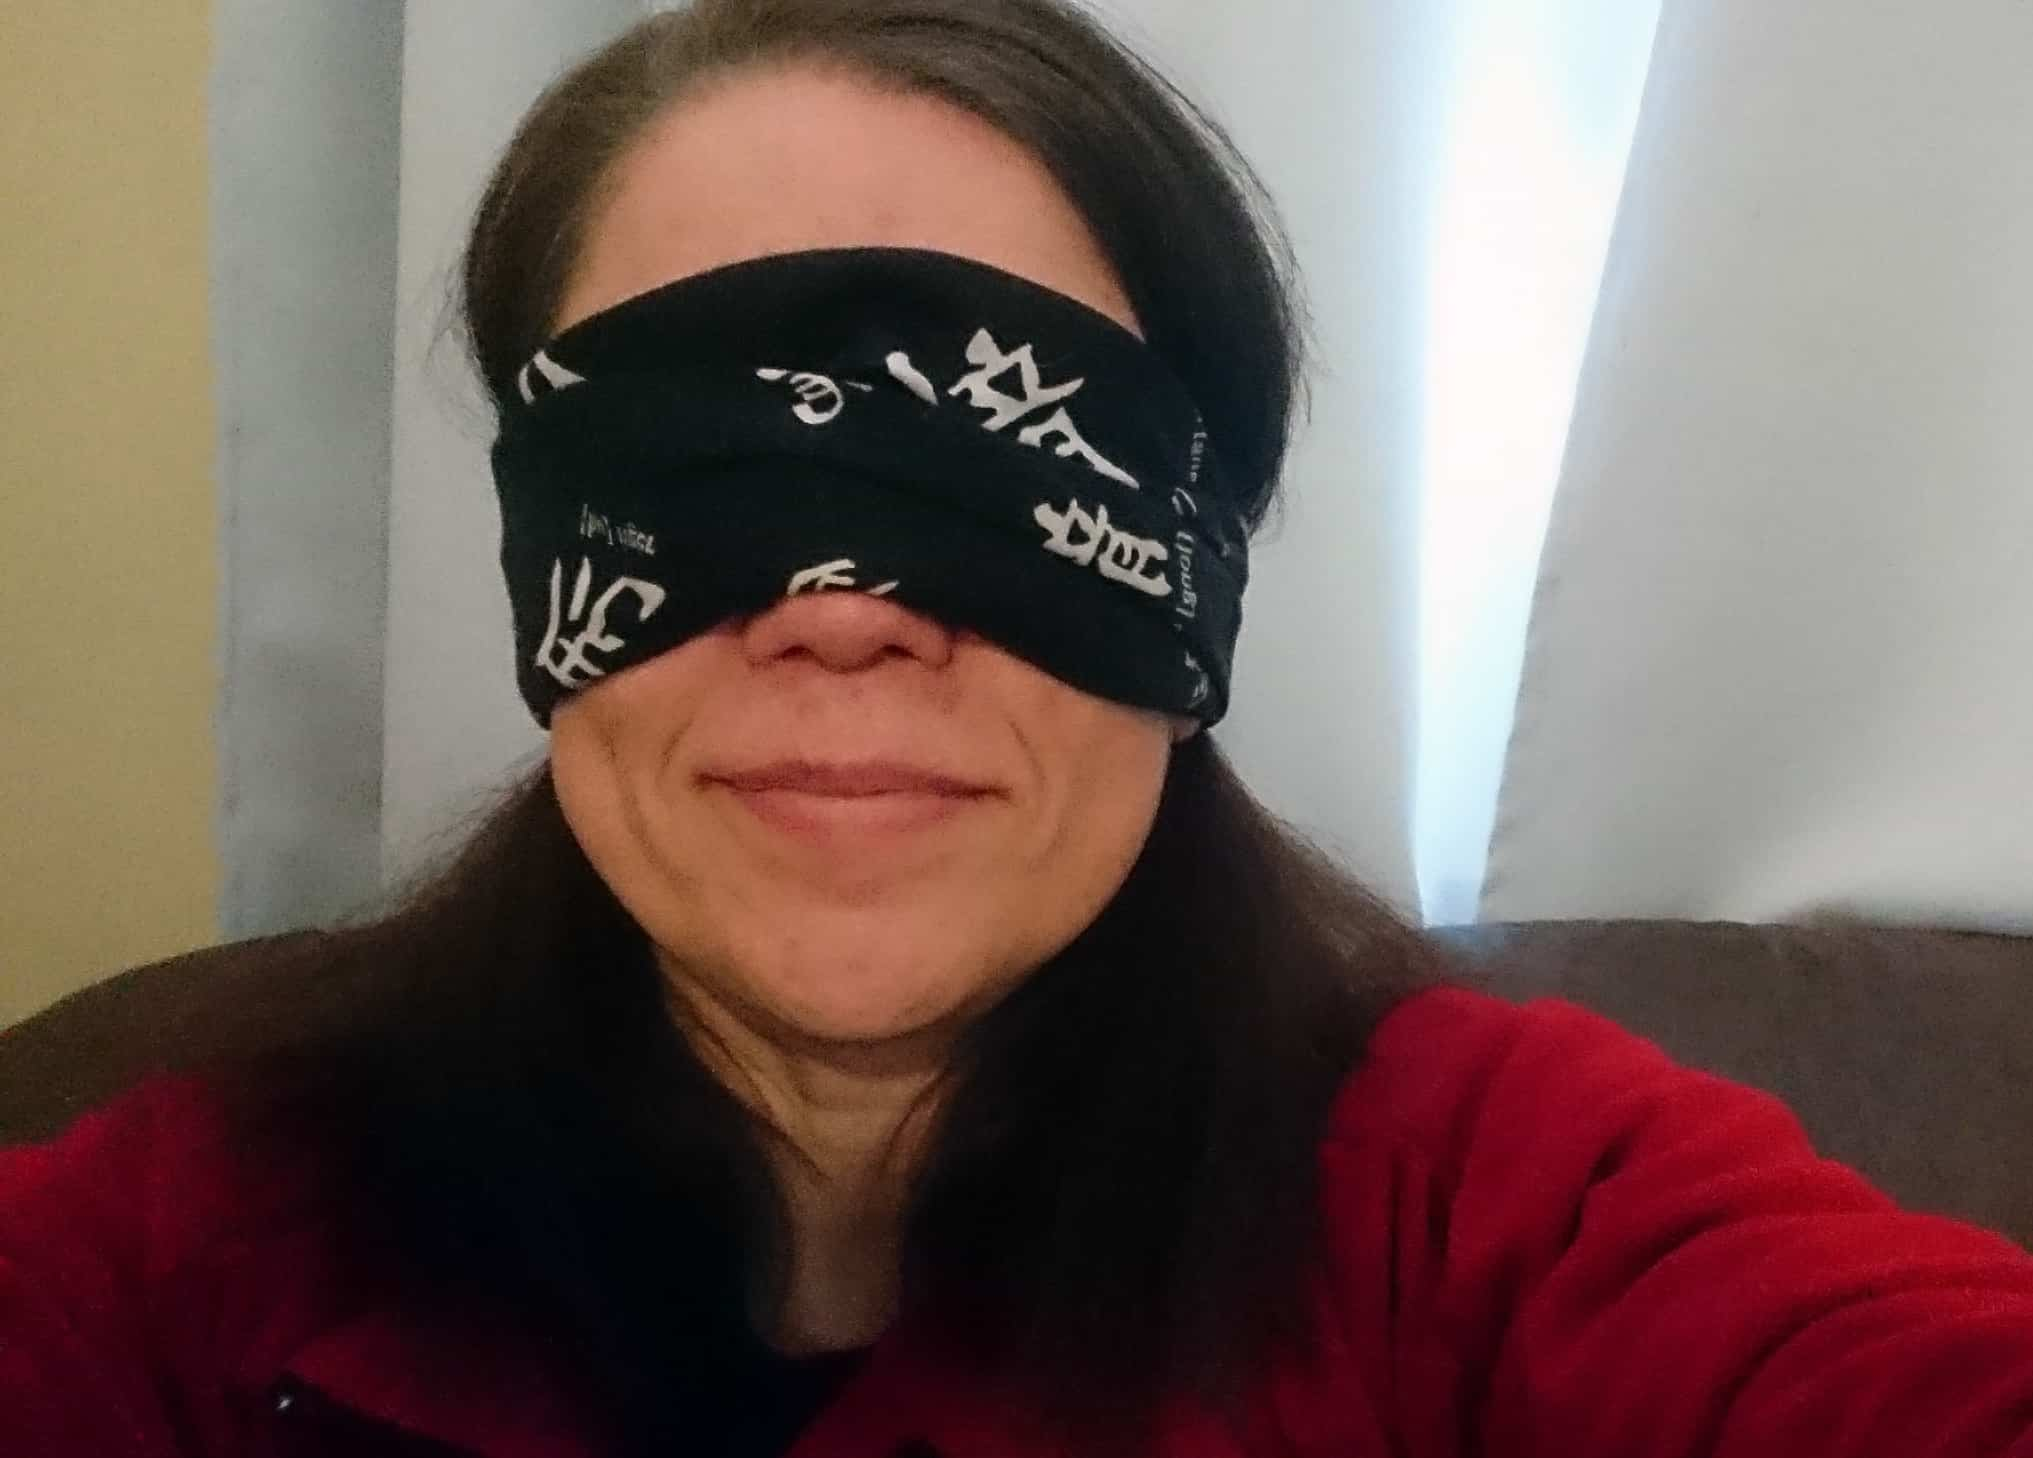 Painting blindfolded – How bad will it be?